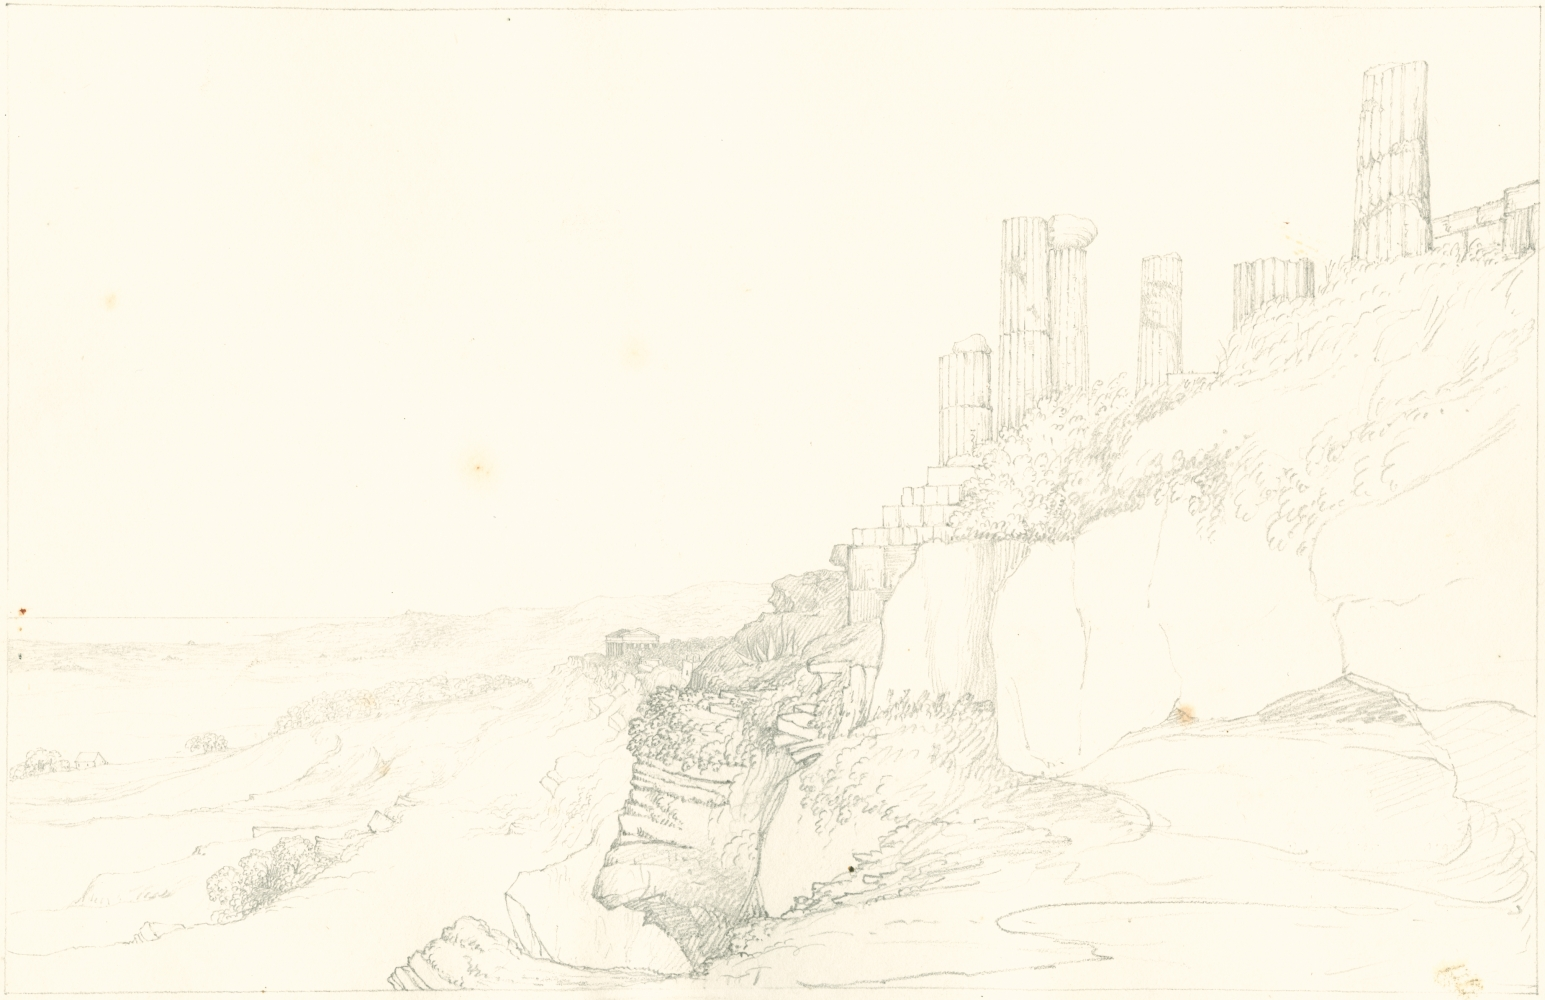 """Sir John Frederick William Herschel (English, 1792-1872) """"No 391 View from below the Temple of Juno, Girgenti Sicily. Temple of Concord in the distance"""", 27 June 1824 Camera lucida drawing, pencil on paper 20.0 x 31.0 cm on 25.1 x 38.4 cm paper"""